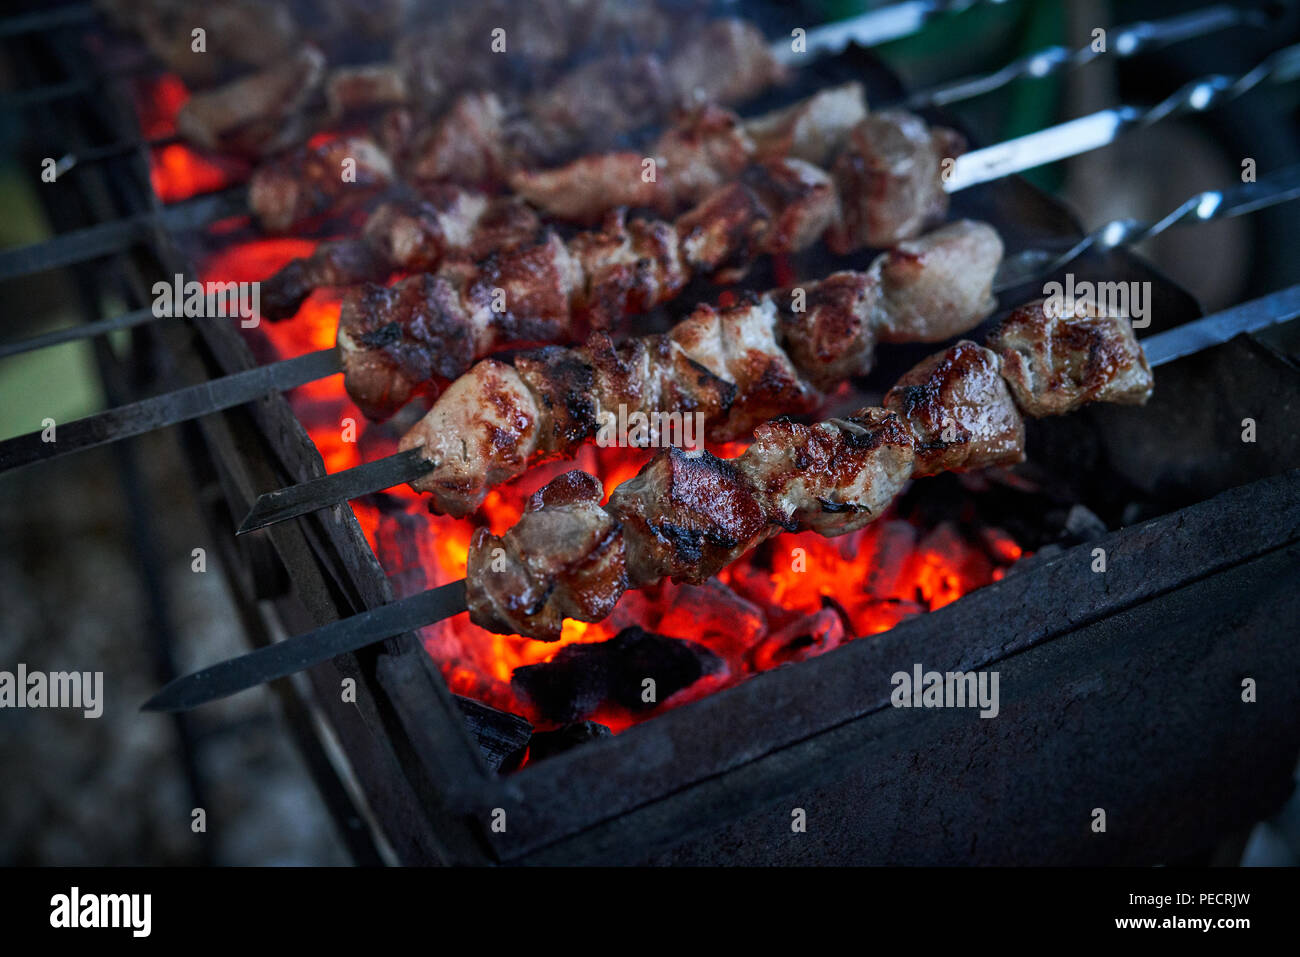 Shashlik preparing on a barbecue grill over charcoal. Pieces of meat on skewers. Shish kebab prepare on fire. - Stock Image